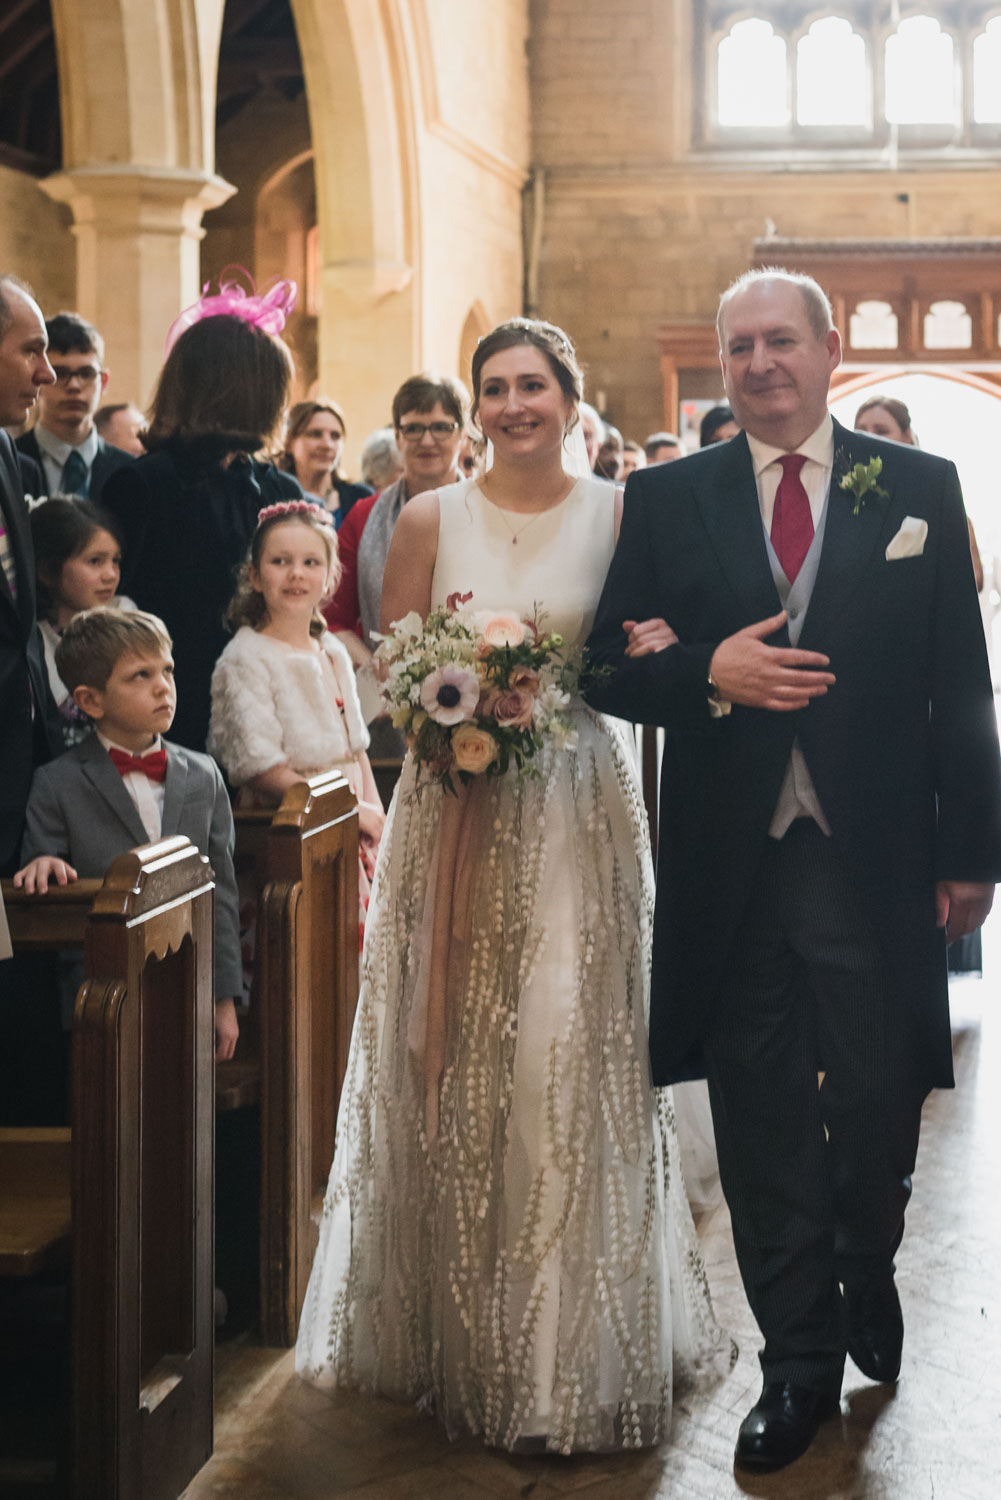 carine bea photography, bride walking in the aisle, church wedding